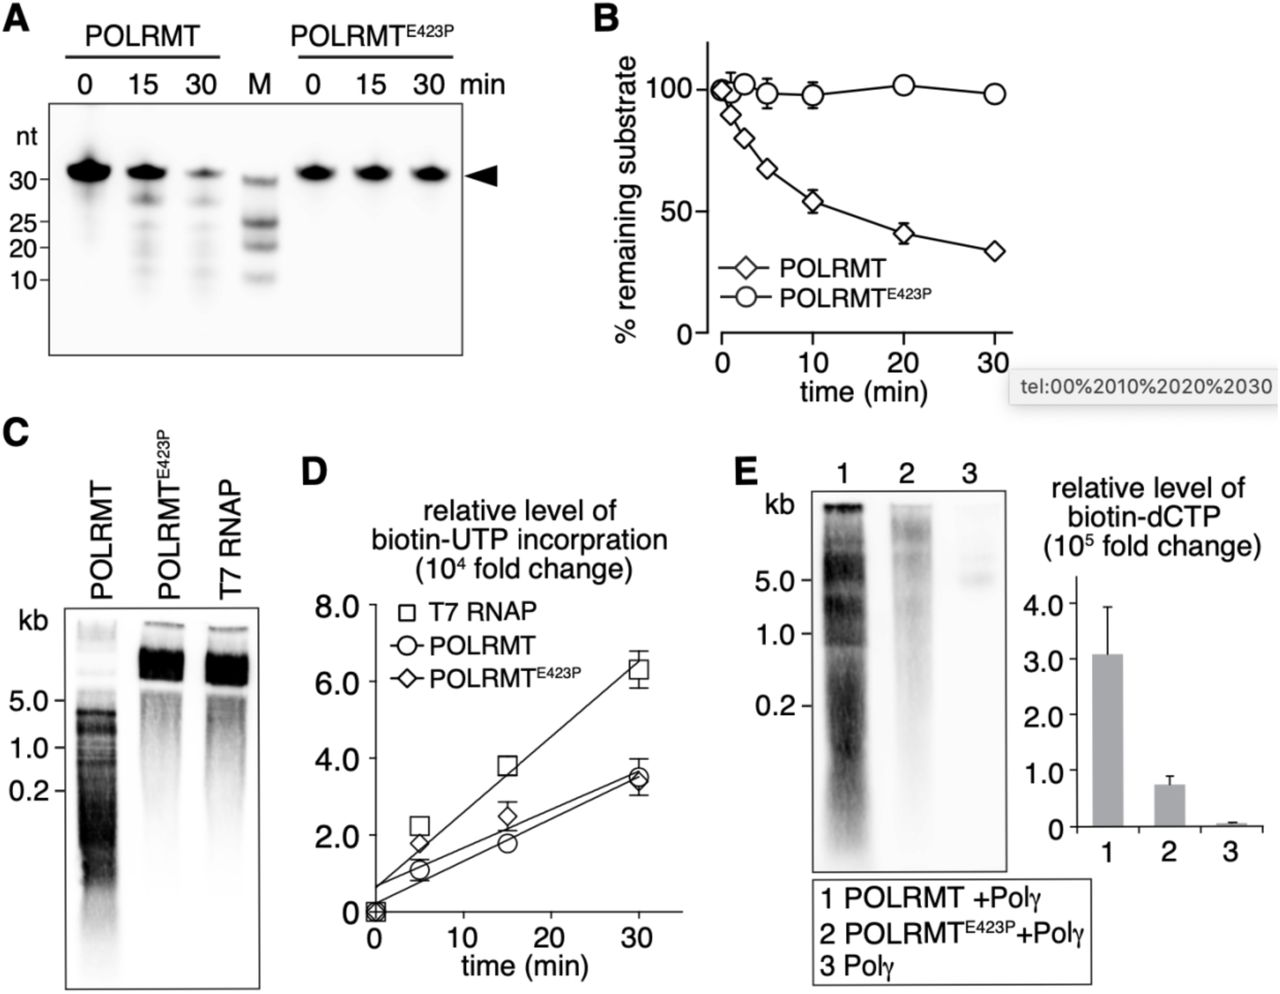 Exoribonuclease activity of POLRMT is essential for priming DNA replication in vitro . (A) POLRMT E423P lacks the exoribonuclease activity. 5'-Biotin-labeled target ssRNA (0.05 µM) was incubated with recombinant POLRMT or POLRMT E423P (0.5 µM) in 10 µl reaction mix for indicated time (min) and separated on a denaturing polyacrylamide gel (20%). Arrowhead indicates the full-length target RNA. (B) Pseudo-first-order cleavage kinetics of 5'-Biotin-labeled target ssRNA by POLRMT and POLRMT E423P . The level of remaining RNA in each time point was measured, normalized to the initial level and plotted. Each data point represents the average of three independent experiments. Error bars represent sd. (C) RNA synthesis of POLRMT, POLRMT E423P (500 fmol) and T7 RNA polymerase (0.5 units) on M13mp18 ssDNA template. RNA products were separated on a denaturing polyacrylamide gel (10%). Molecular size markers are shown on the left. (D) Kinetics of Biotin-16-UTP incorporation in the in vitro transcription assay using POLRMT, POLRMT E423P (500 fmol) or T7 RNA polymerase (0.5 units) on ssDNA template. Each time point represents the average of three independent experiments. Error bars represent sd. A line of linear regression was plotted for each protein. (POLRMT, R 2 =0.98; POLRMT E423P , R 2 =0.84; T7 RNA polymerase, R 2 =0.96.) (E) The RNA-primed DNA synthesis assay was monitored in the presence of <t>Biotin-11-dCTP</t> for labeling of DNA products. Lane 1, POLRMT (500 fmol) and POL γ (300 fmol); Lane 2, POLRMT E423P (500 fmol) and POL γ (300 fmol); Lane 3, Control experiment using POL γ (300 fmol) only. Reactions were incubated for 1 h at 37 °C and the products were analyzed on a denaturing polyacrylamide gel (10%). Each data point represents the average of three independent experiments. Error bars represent sd.